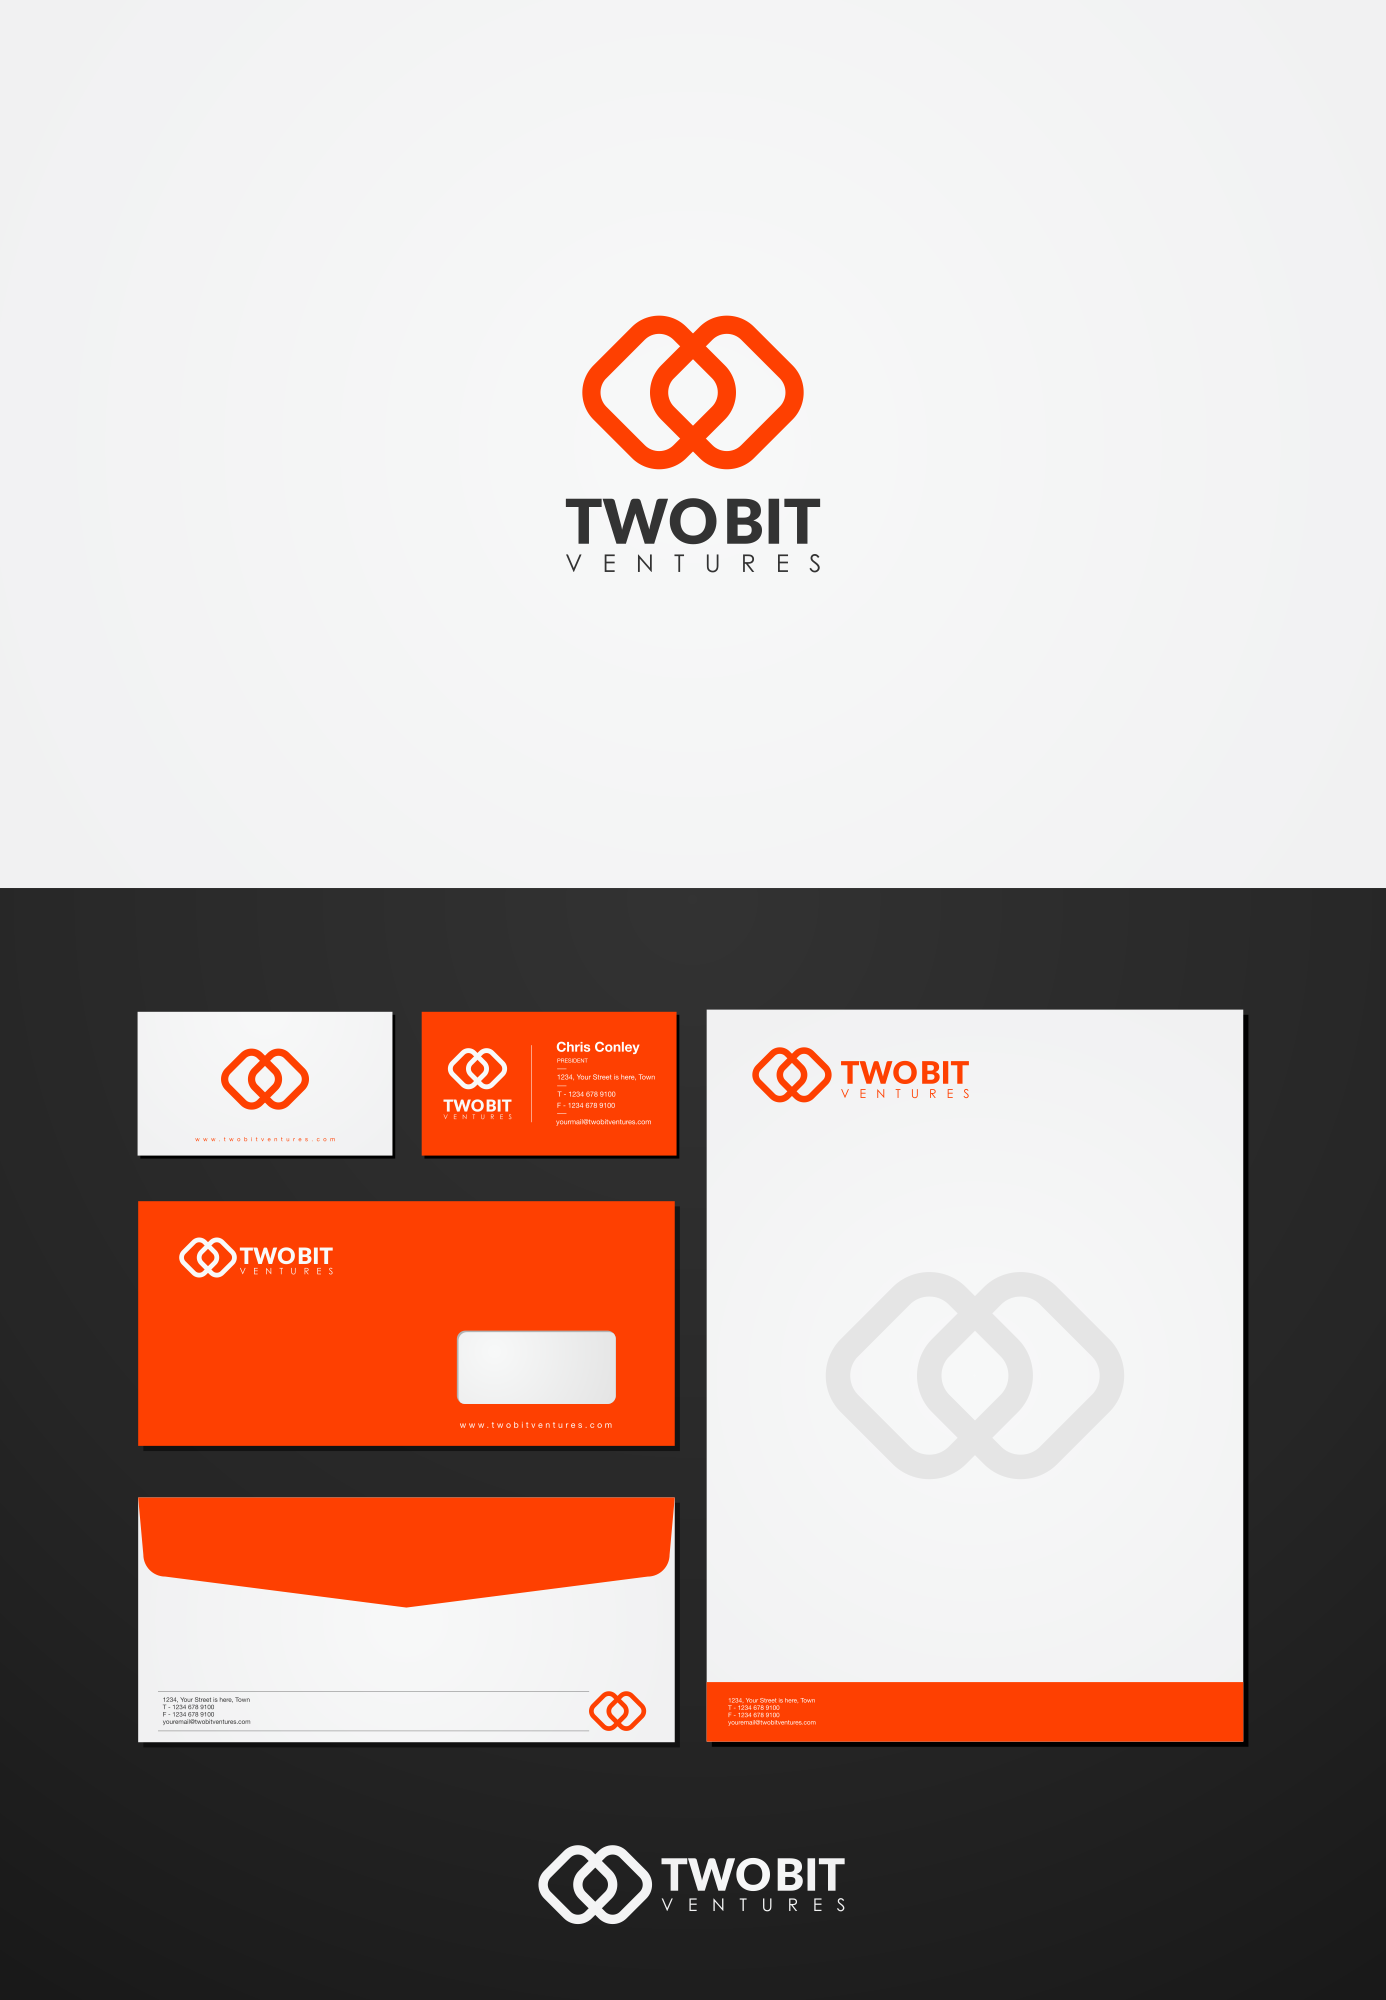 Modern identity with a smile for a social venture firm